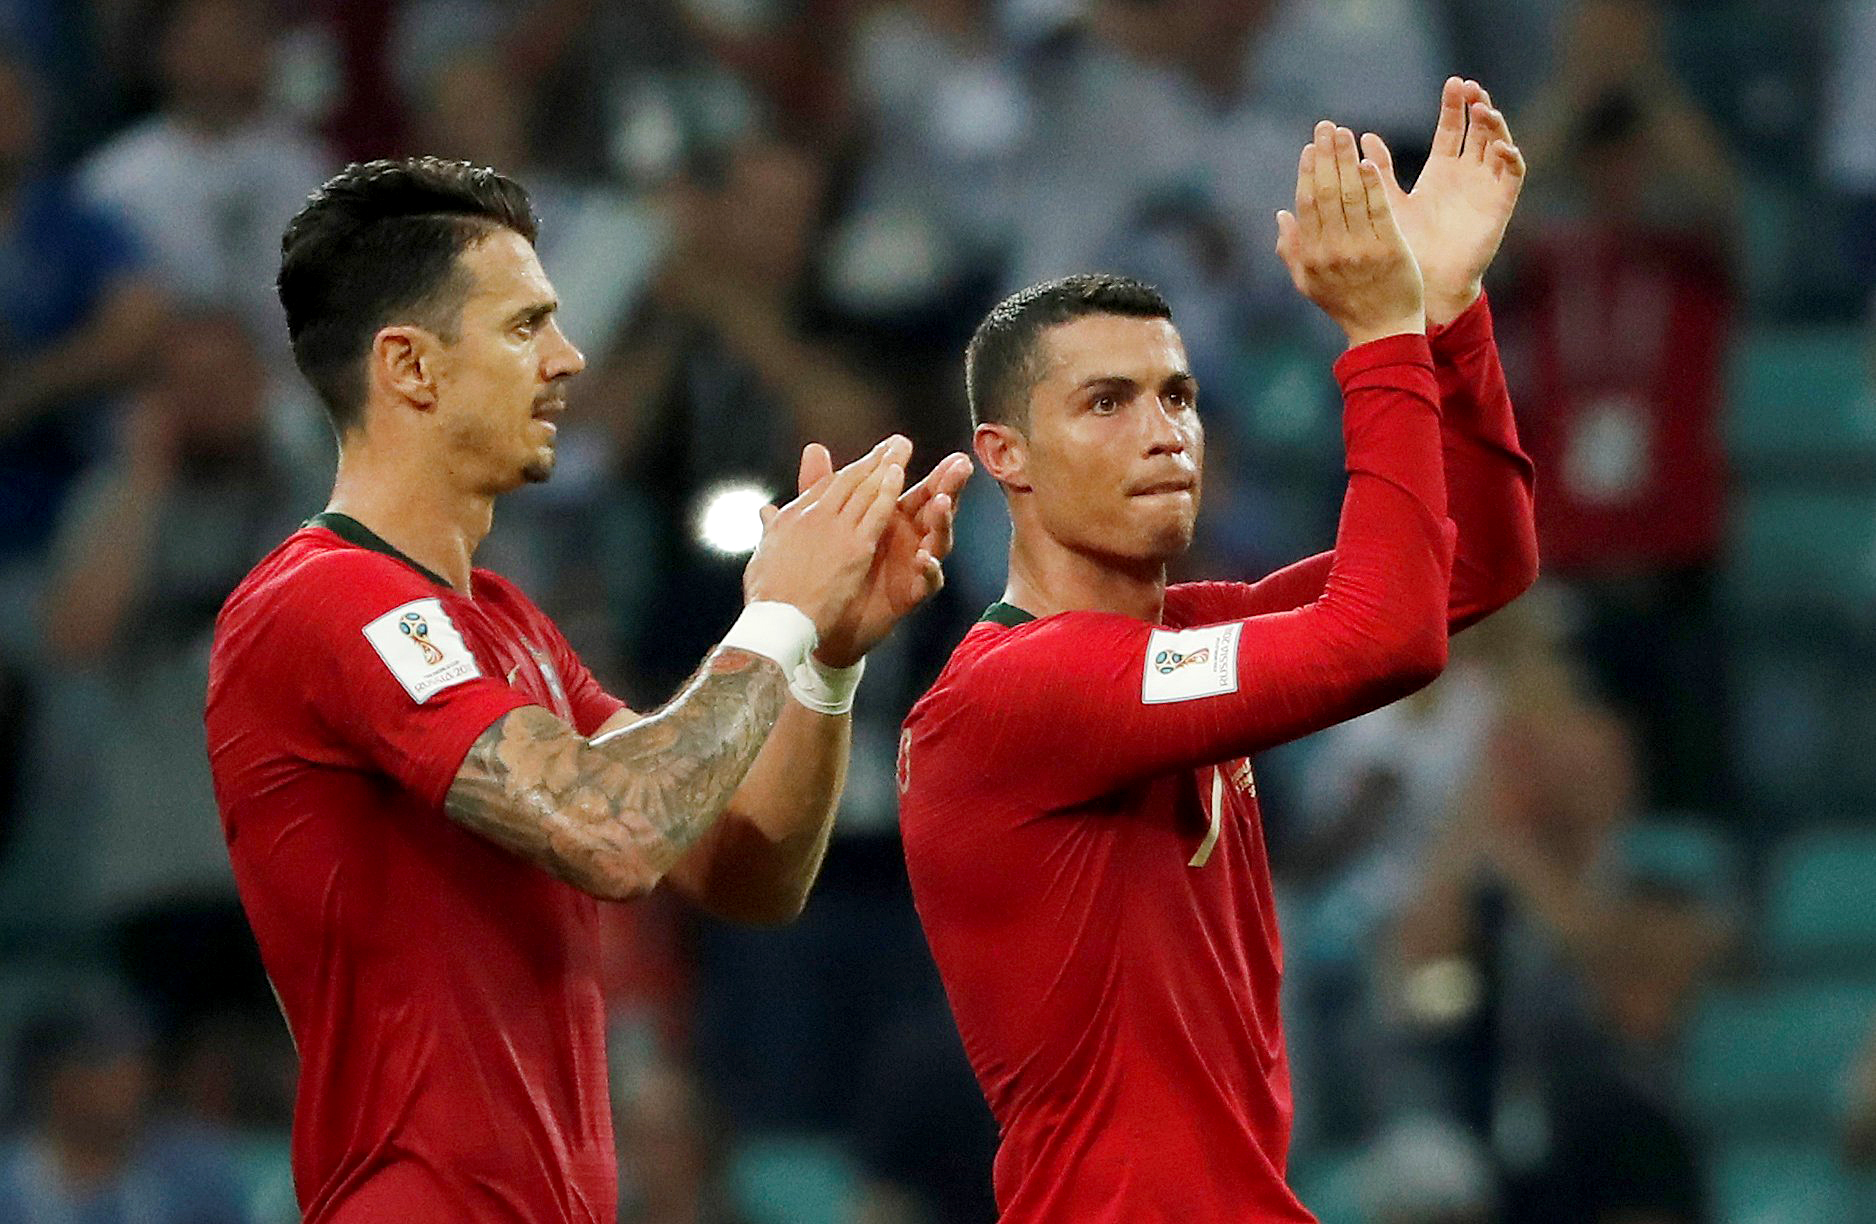 Sensational-Ronaldo-hat-trick-helps-Portugal-to-3-3-draw-with-Spain